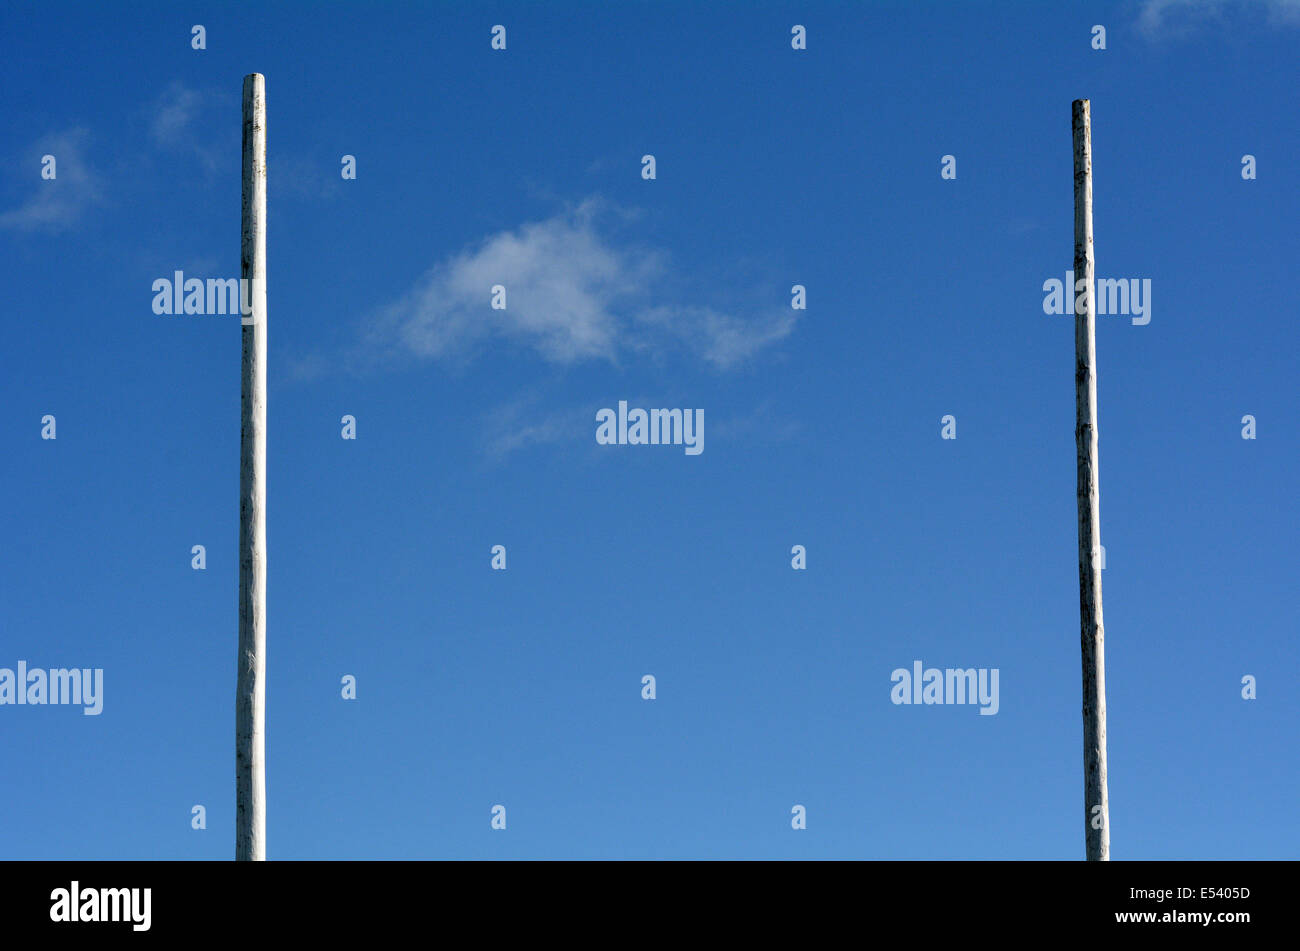 Goal posts for football, rugby union or league on field. Concept photo of sport, achievement mission and goals. - Stock Image